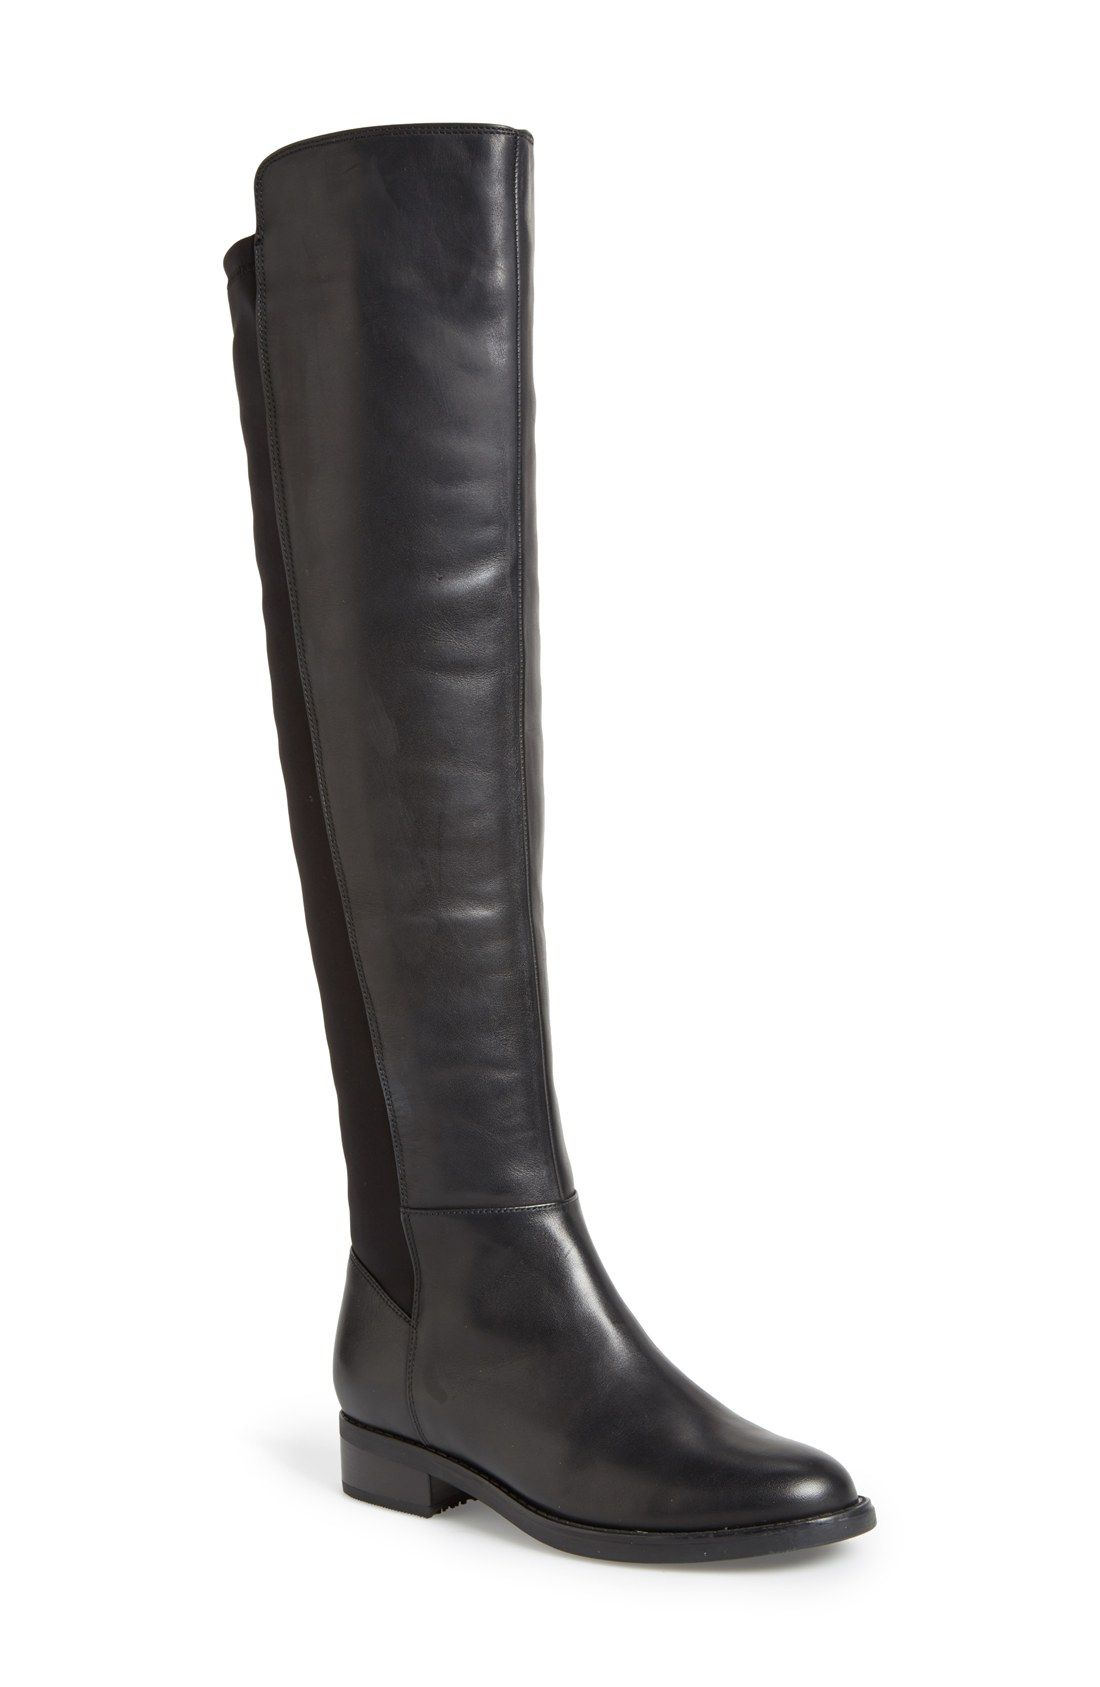 These Over The Knee Waterproof Boots Are Hot Winter